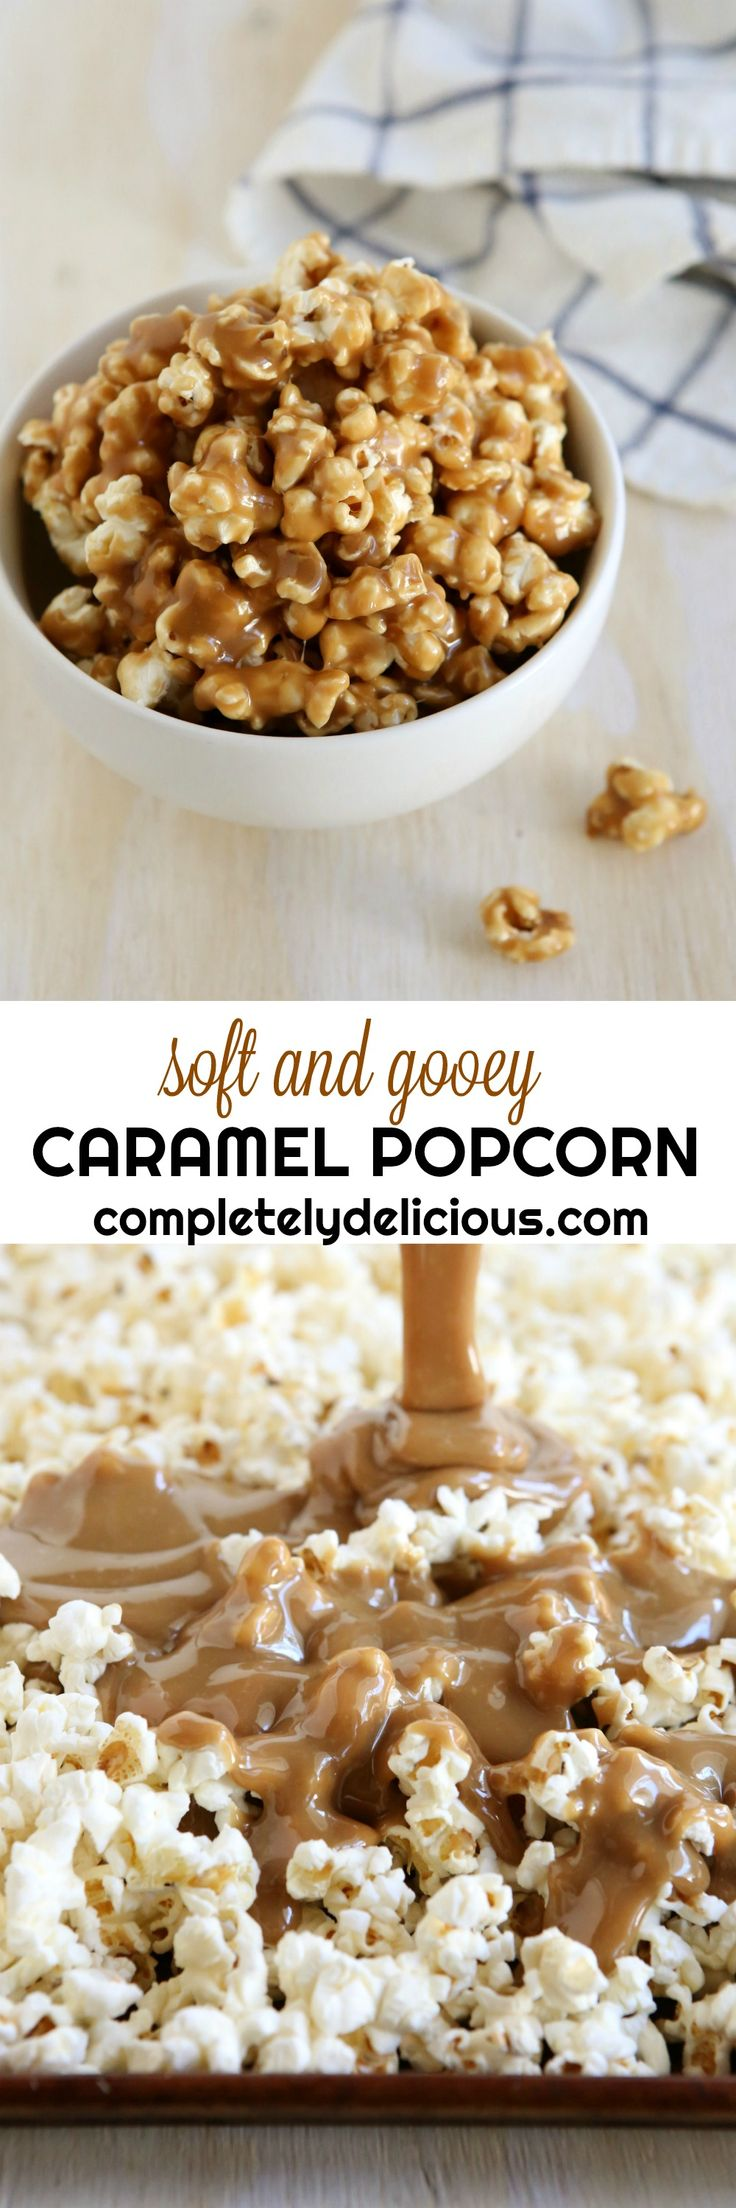 Soft and Gooey Caramel Popcorn